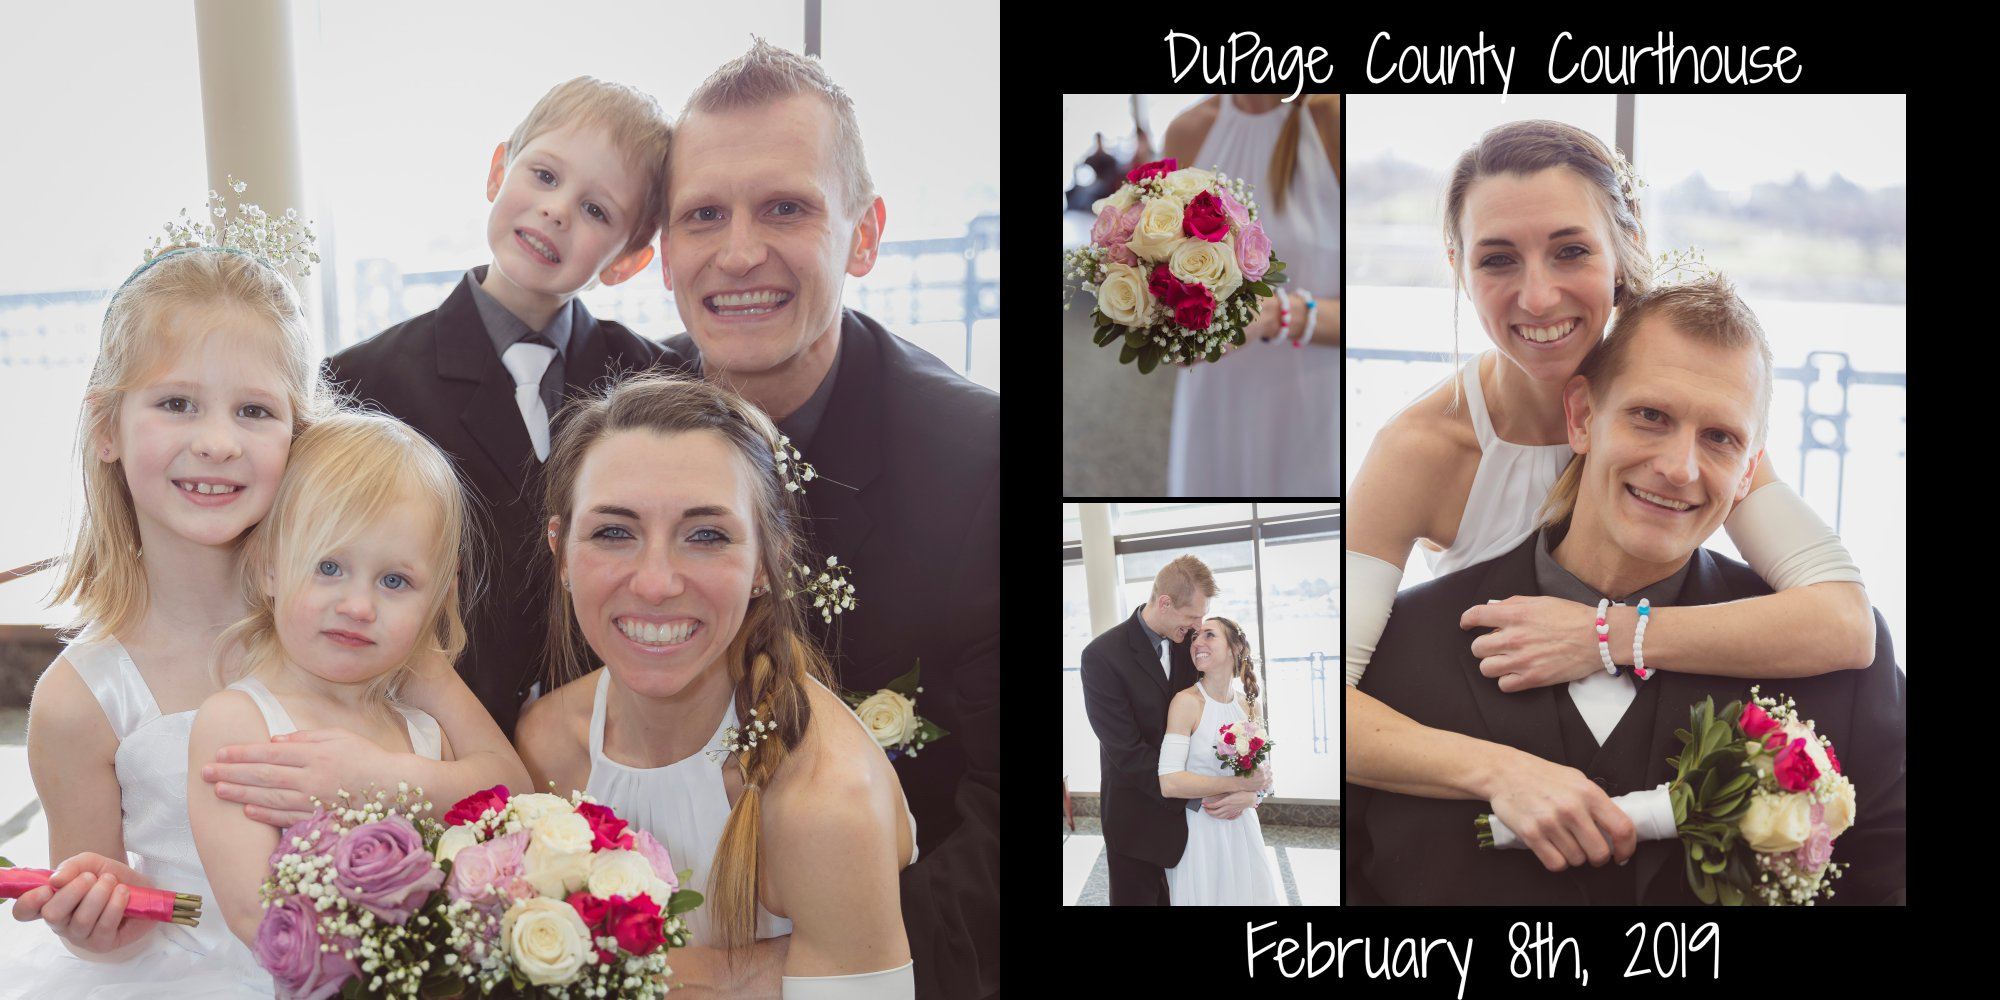 DuPage County Courthouse Wedding